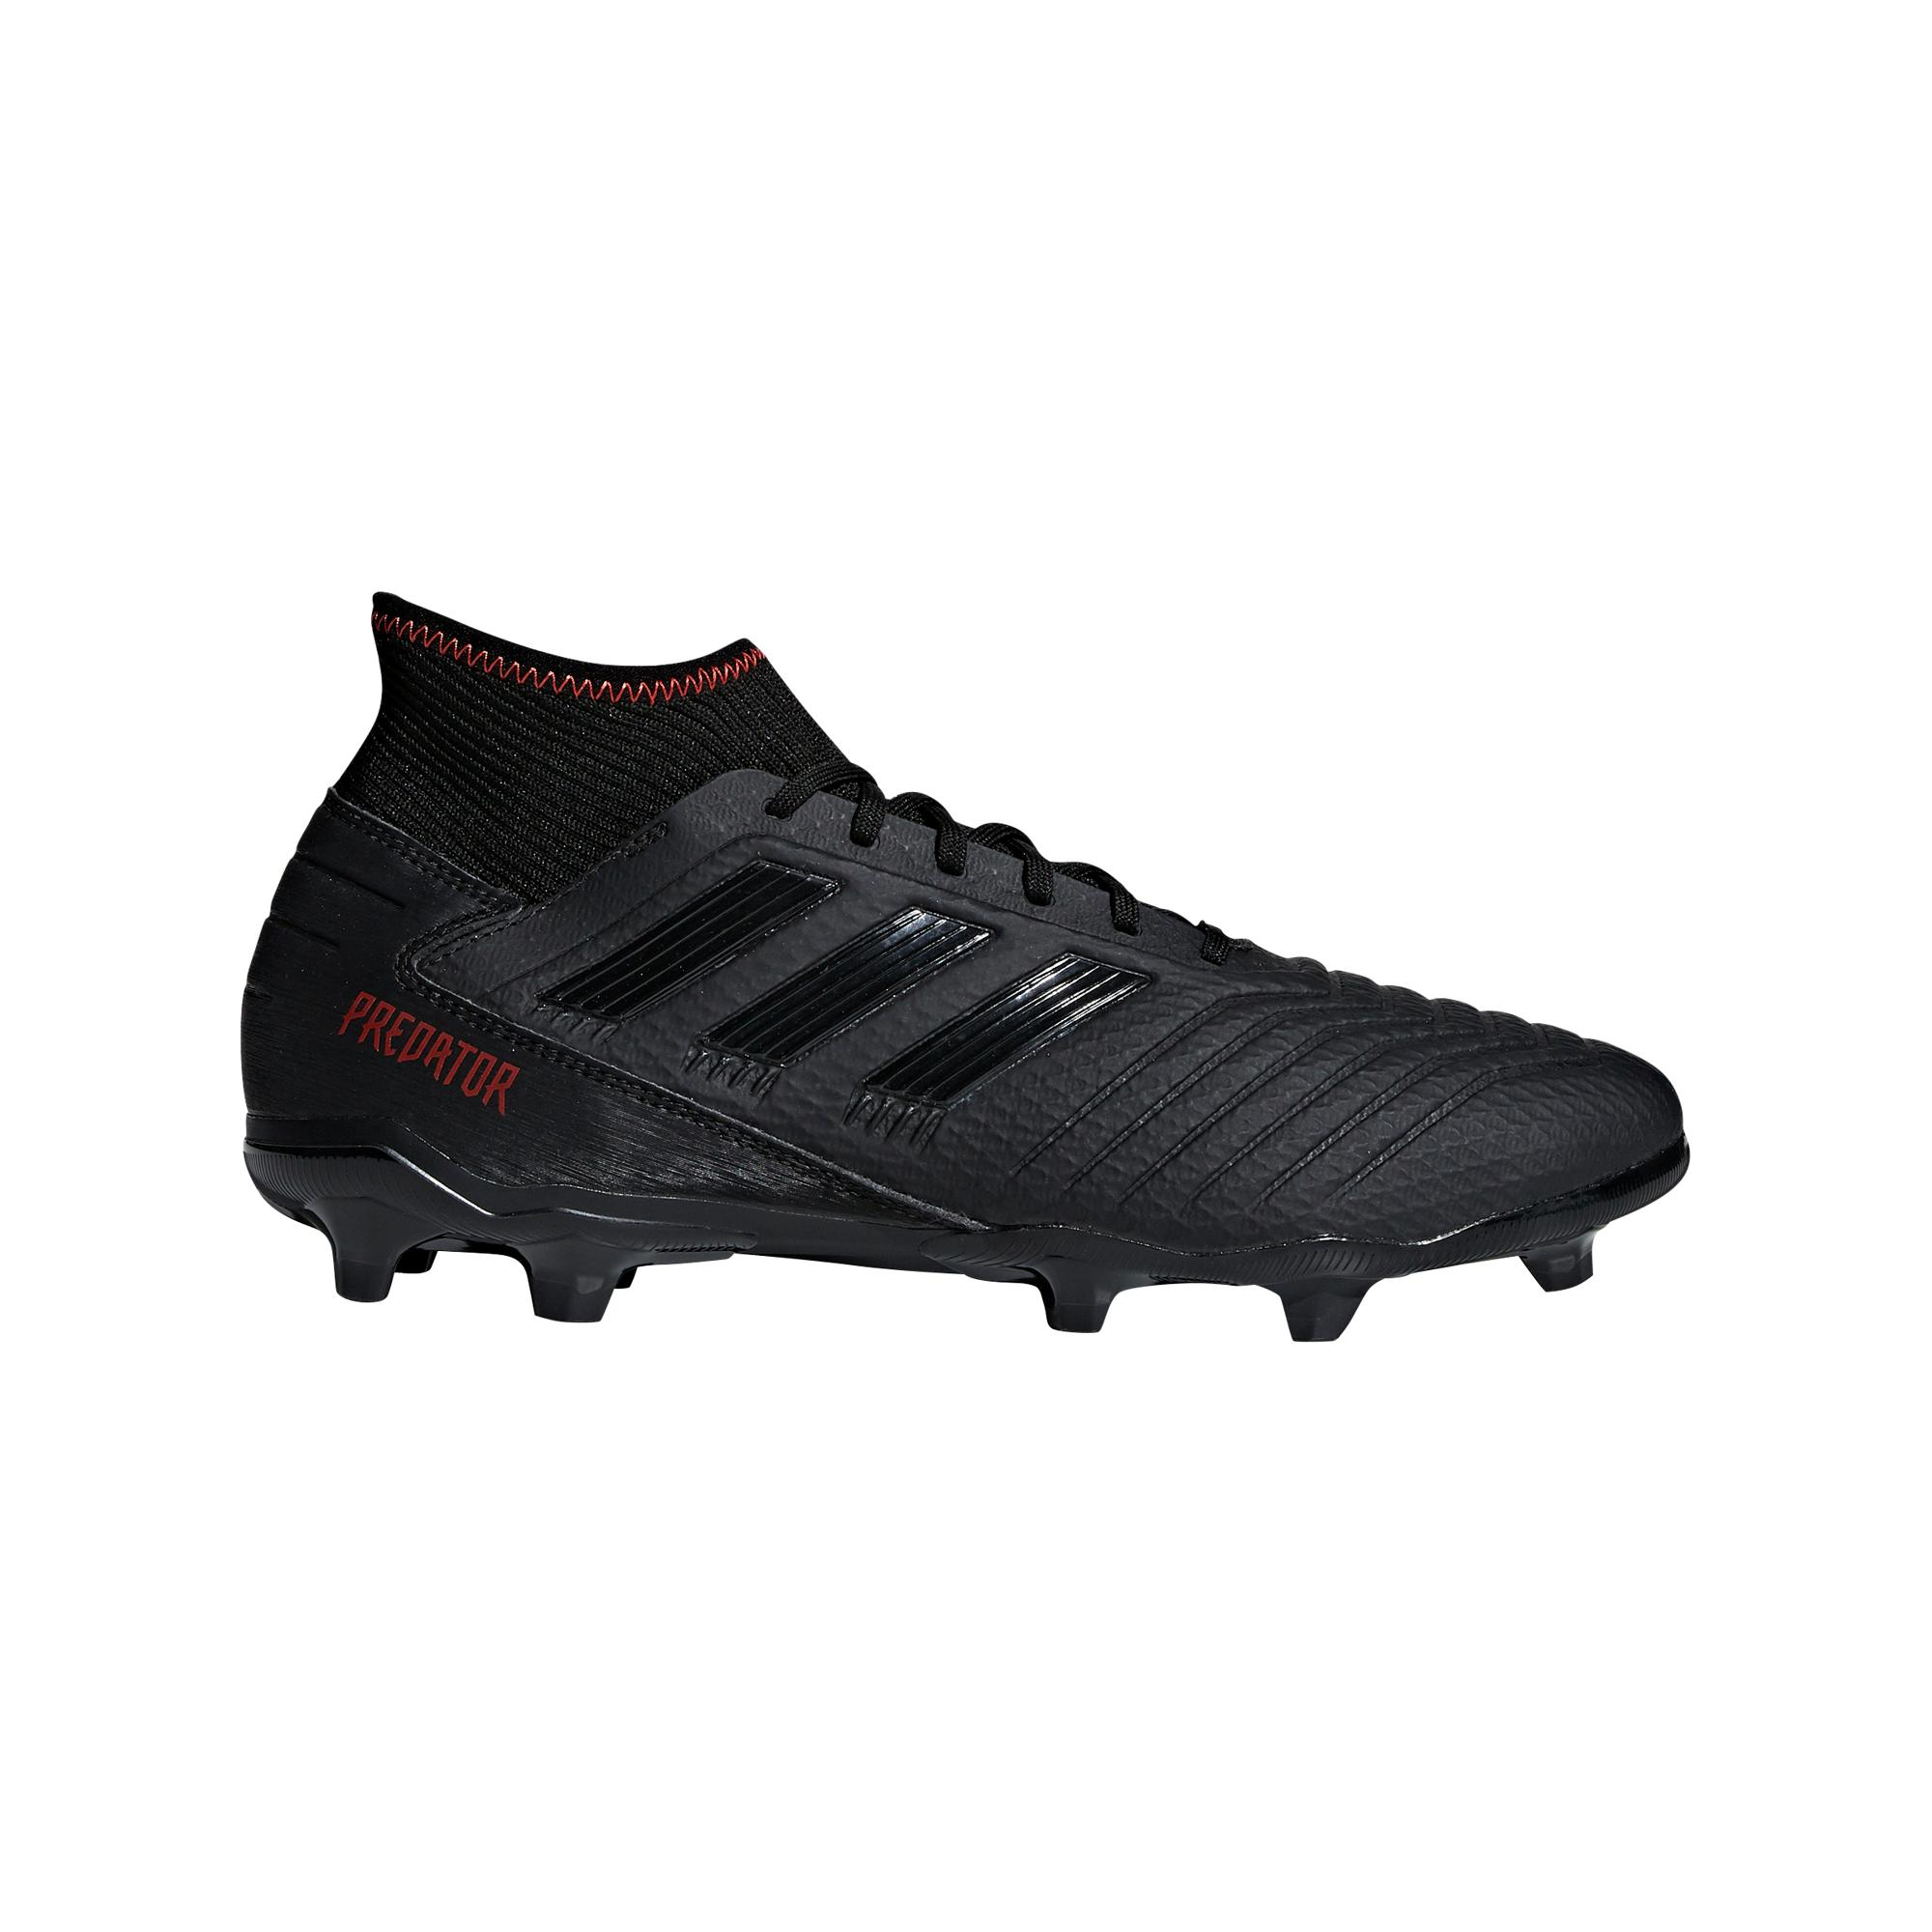 adidas mens soccer cleats